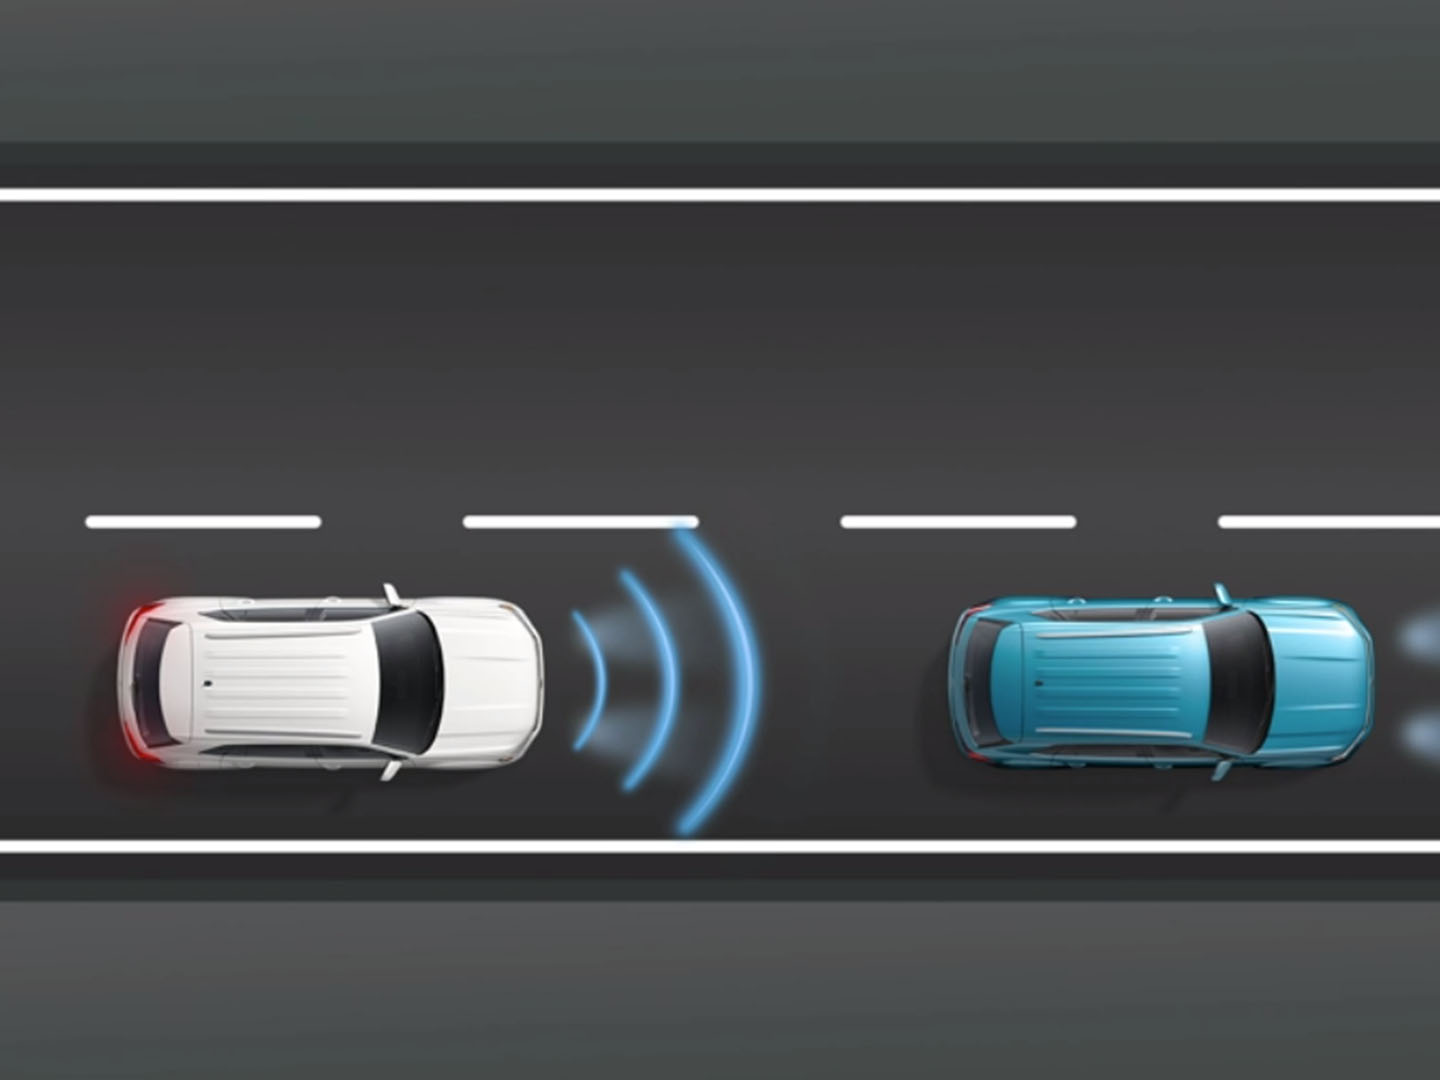 VW Front Assist with pedestrian monitoring technology